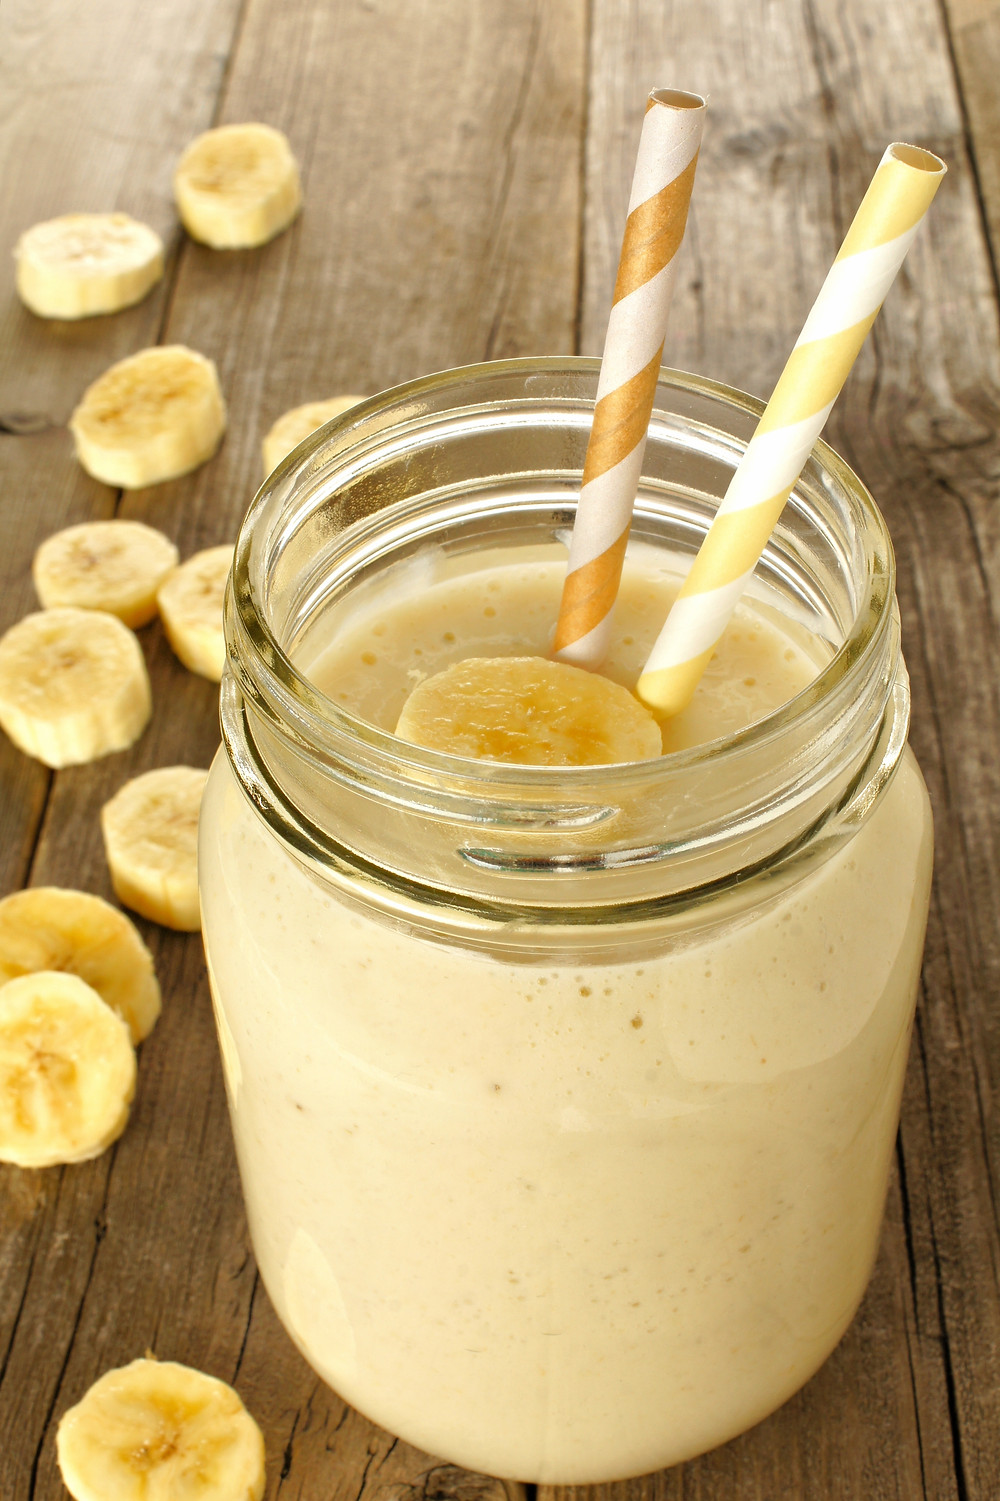 Overnight Oat Parfait by Stacey Antine, MS, RD, Bergen County Moms